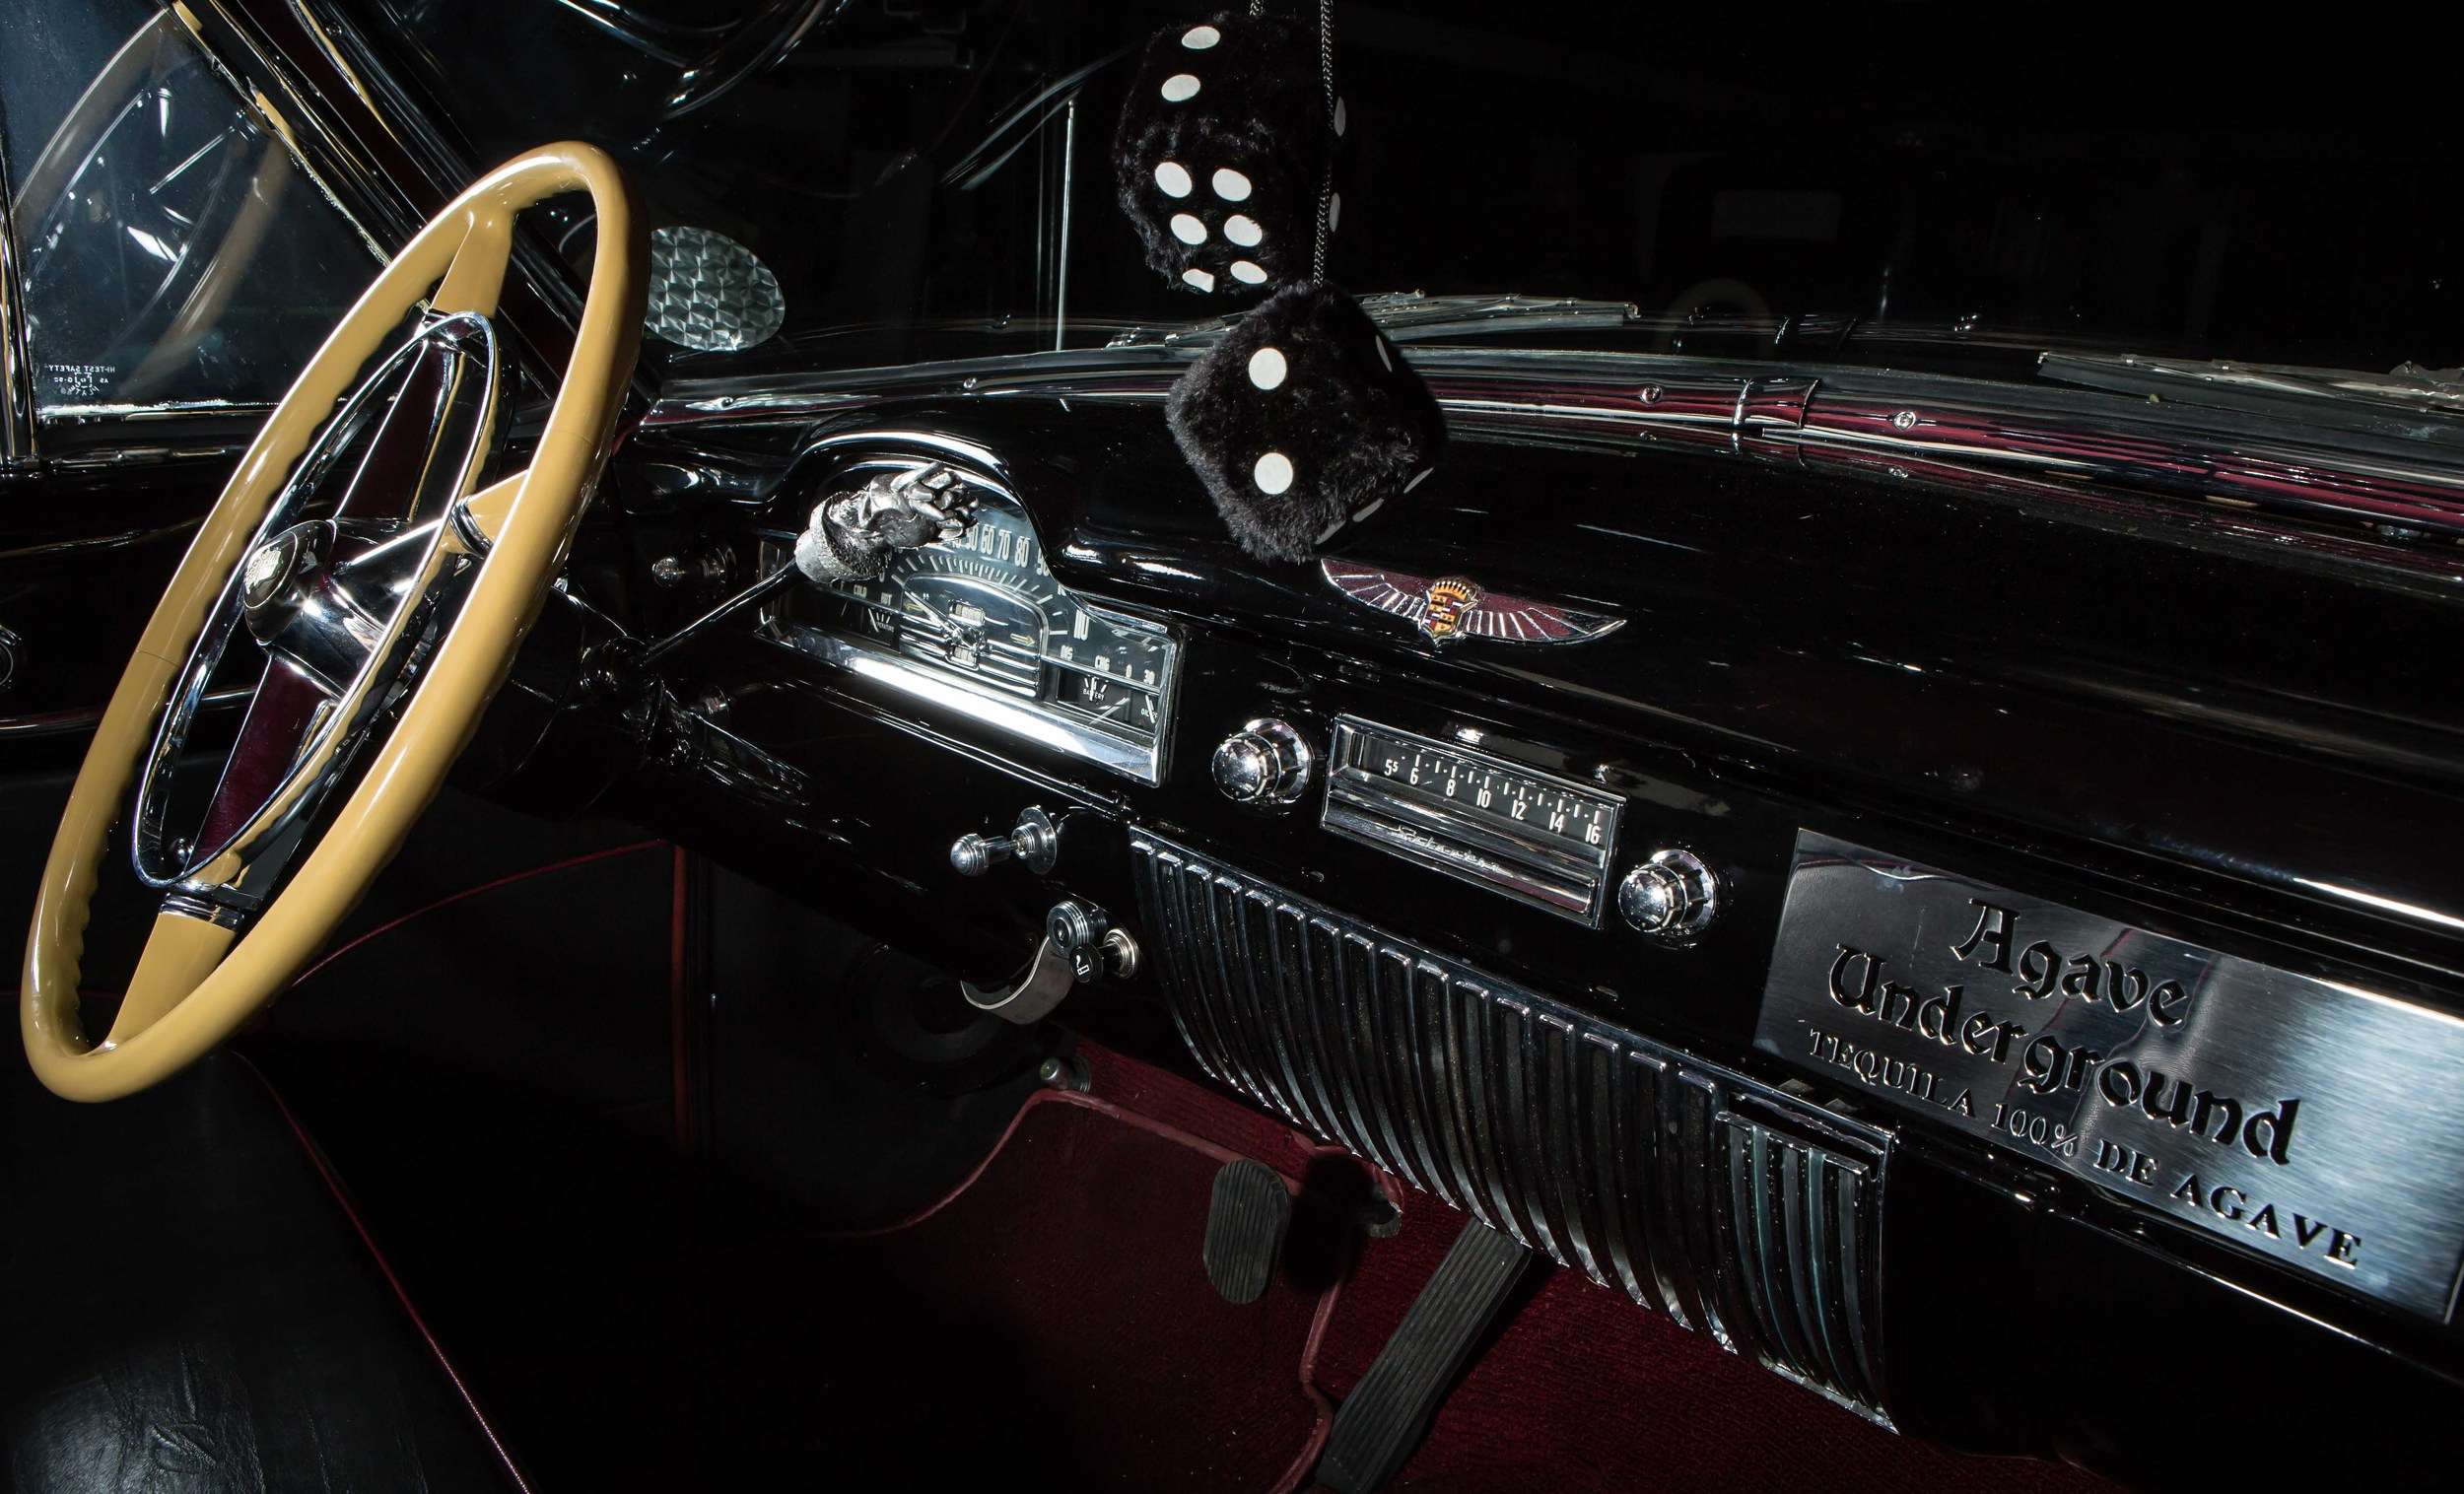 Anaheim Rod and Custom 1950 Cadillac -1.jpg